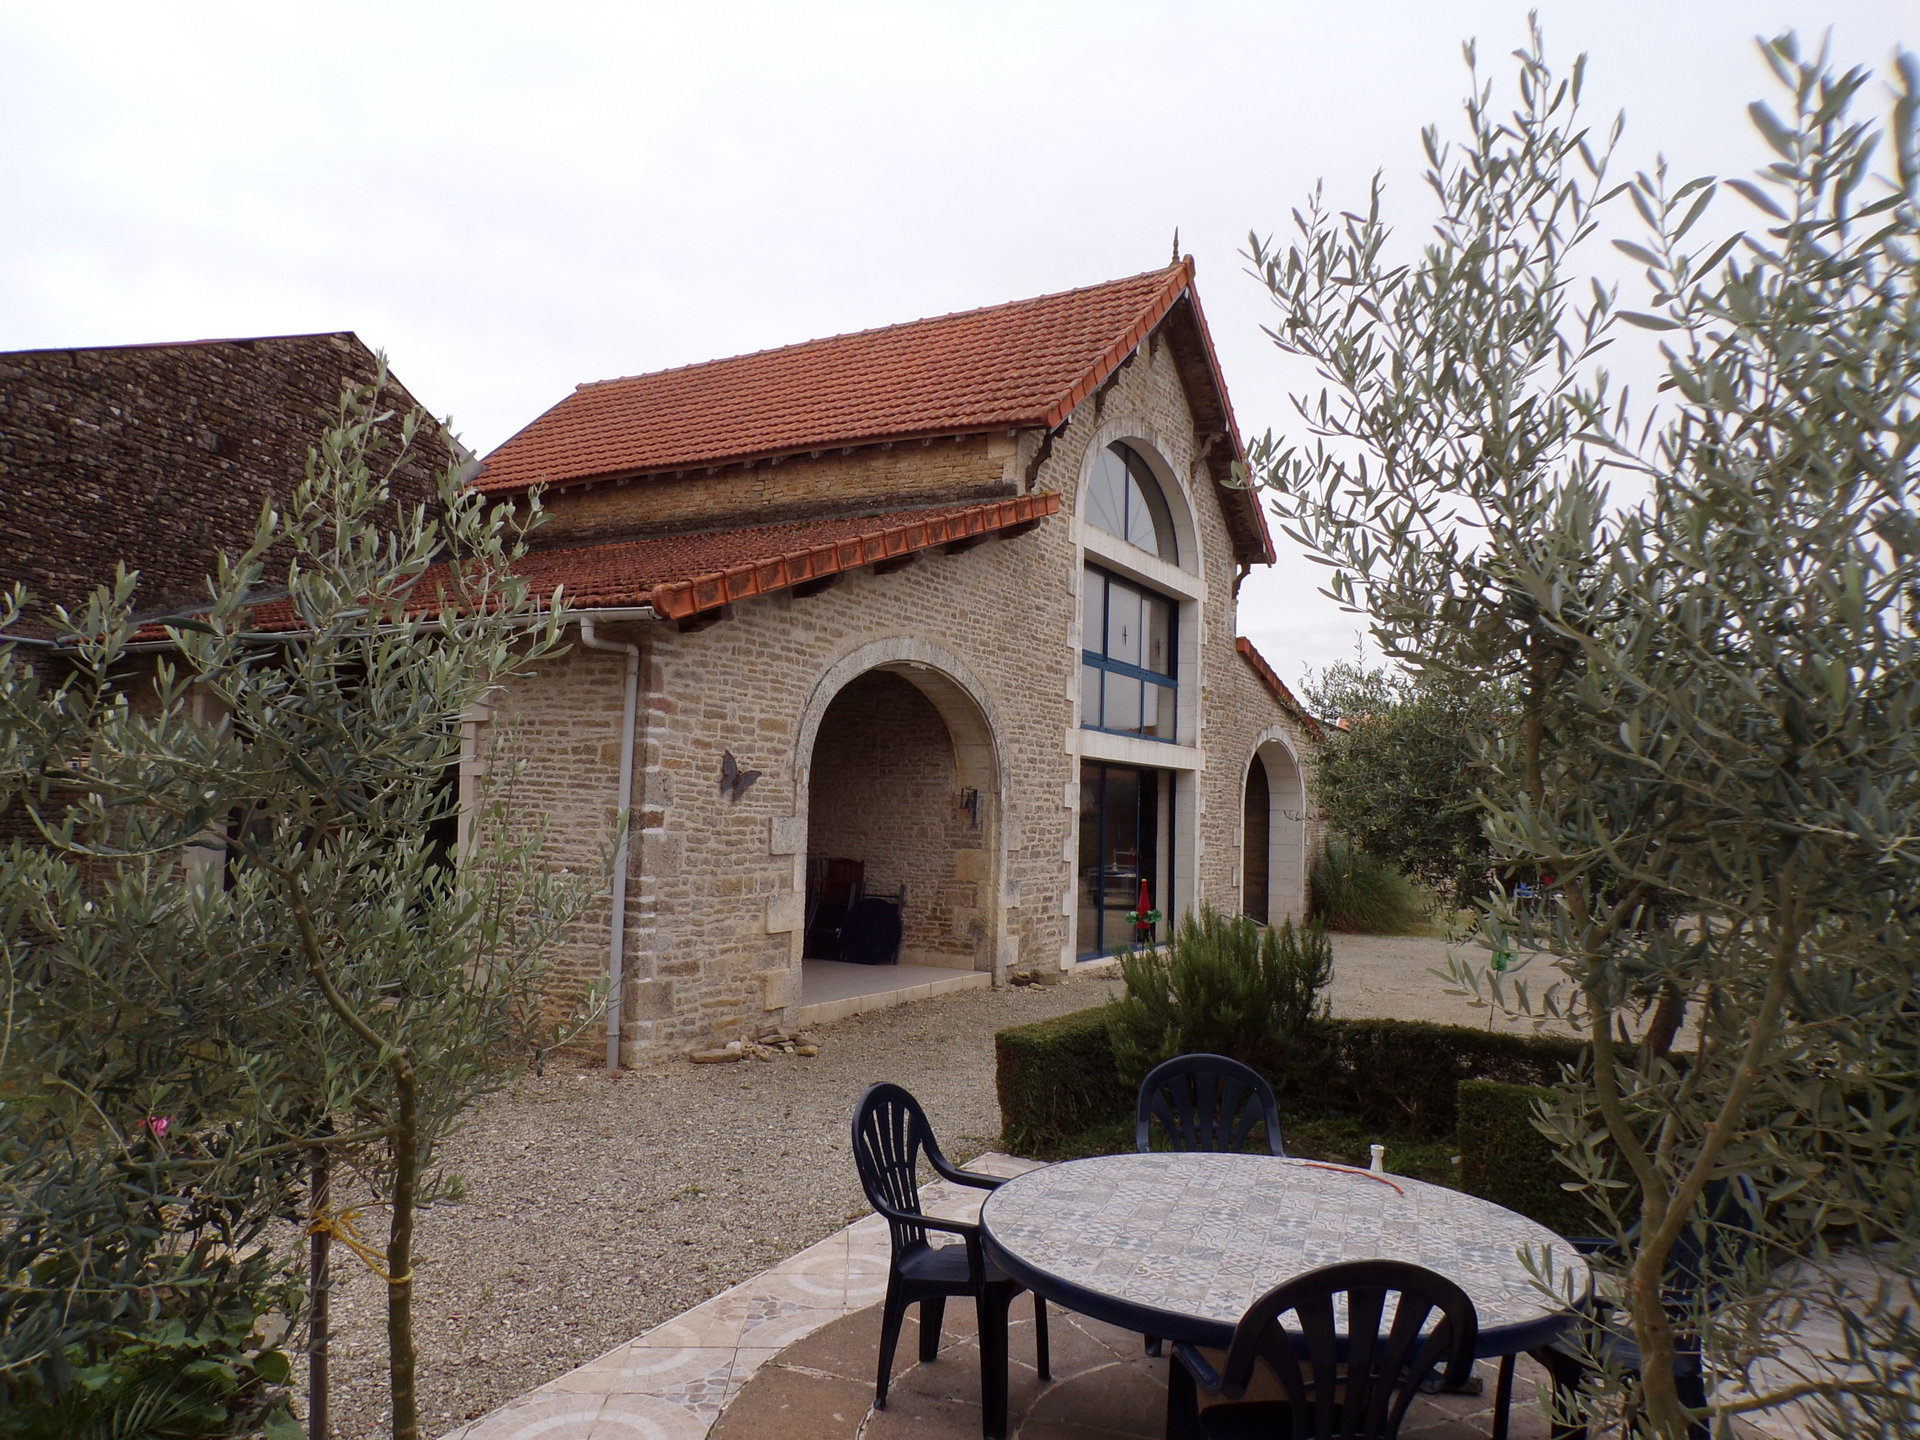 Property complex between Chef Boutonne and Villefagnan